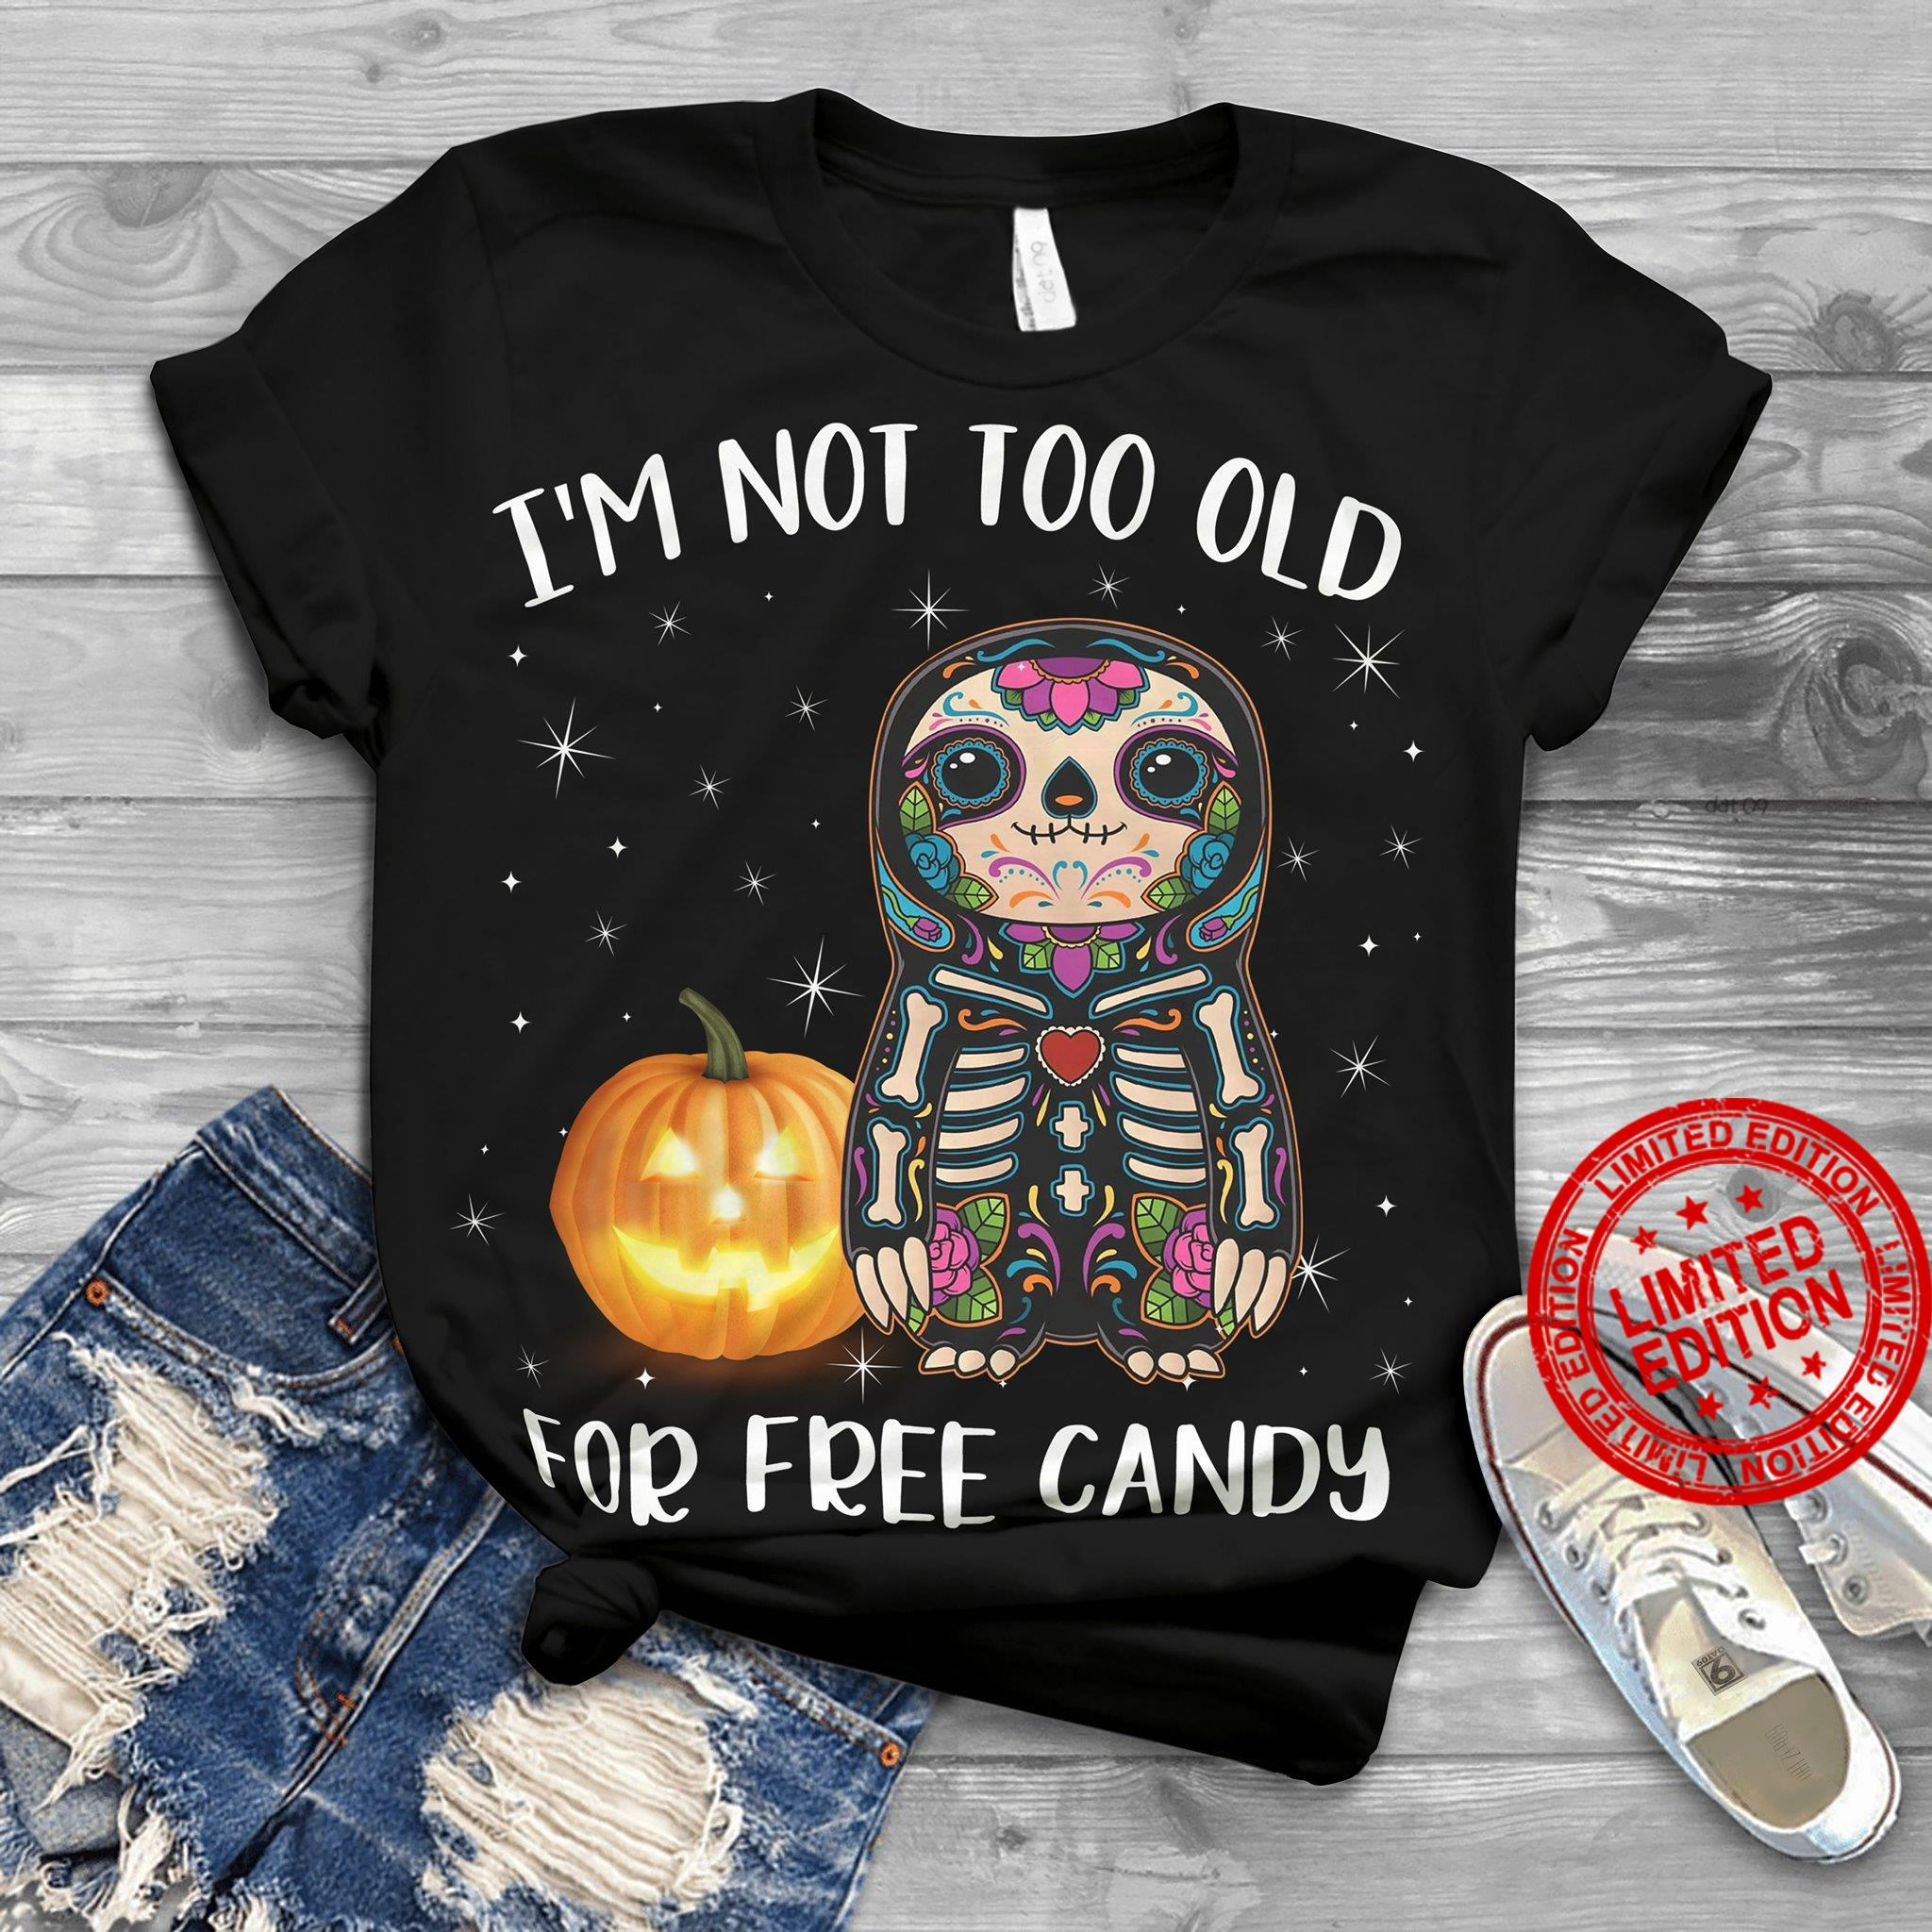 I'm Not Too Old For Free Candy Shirt